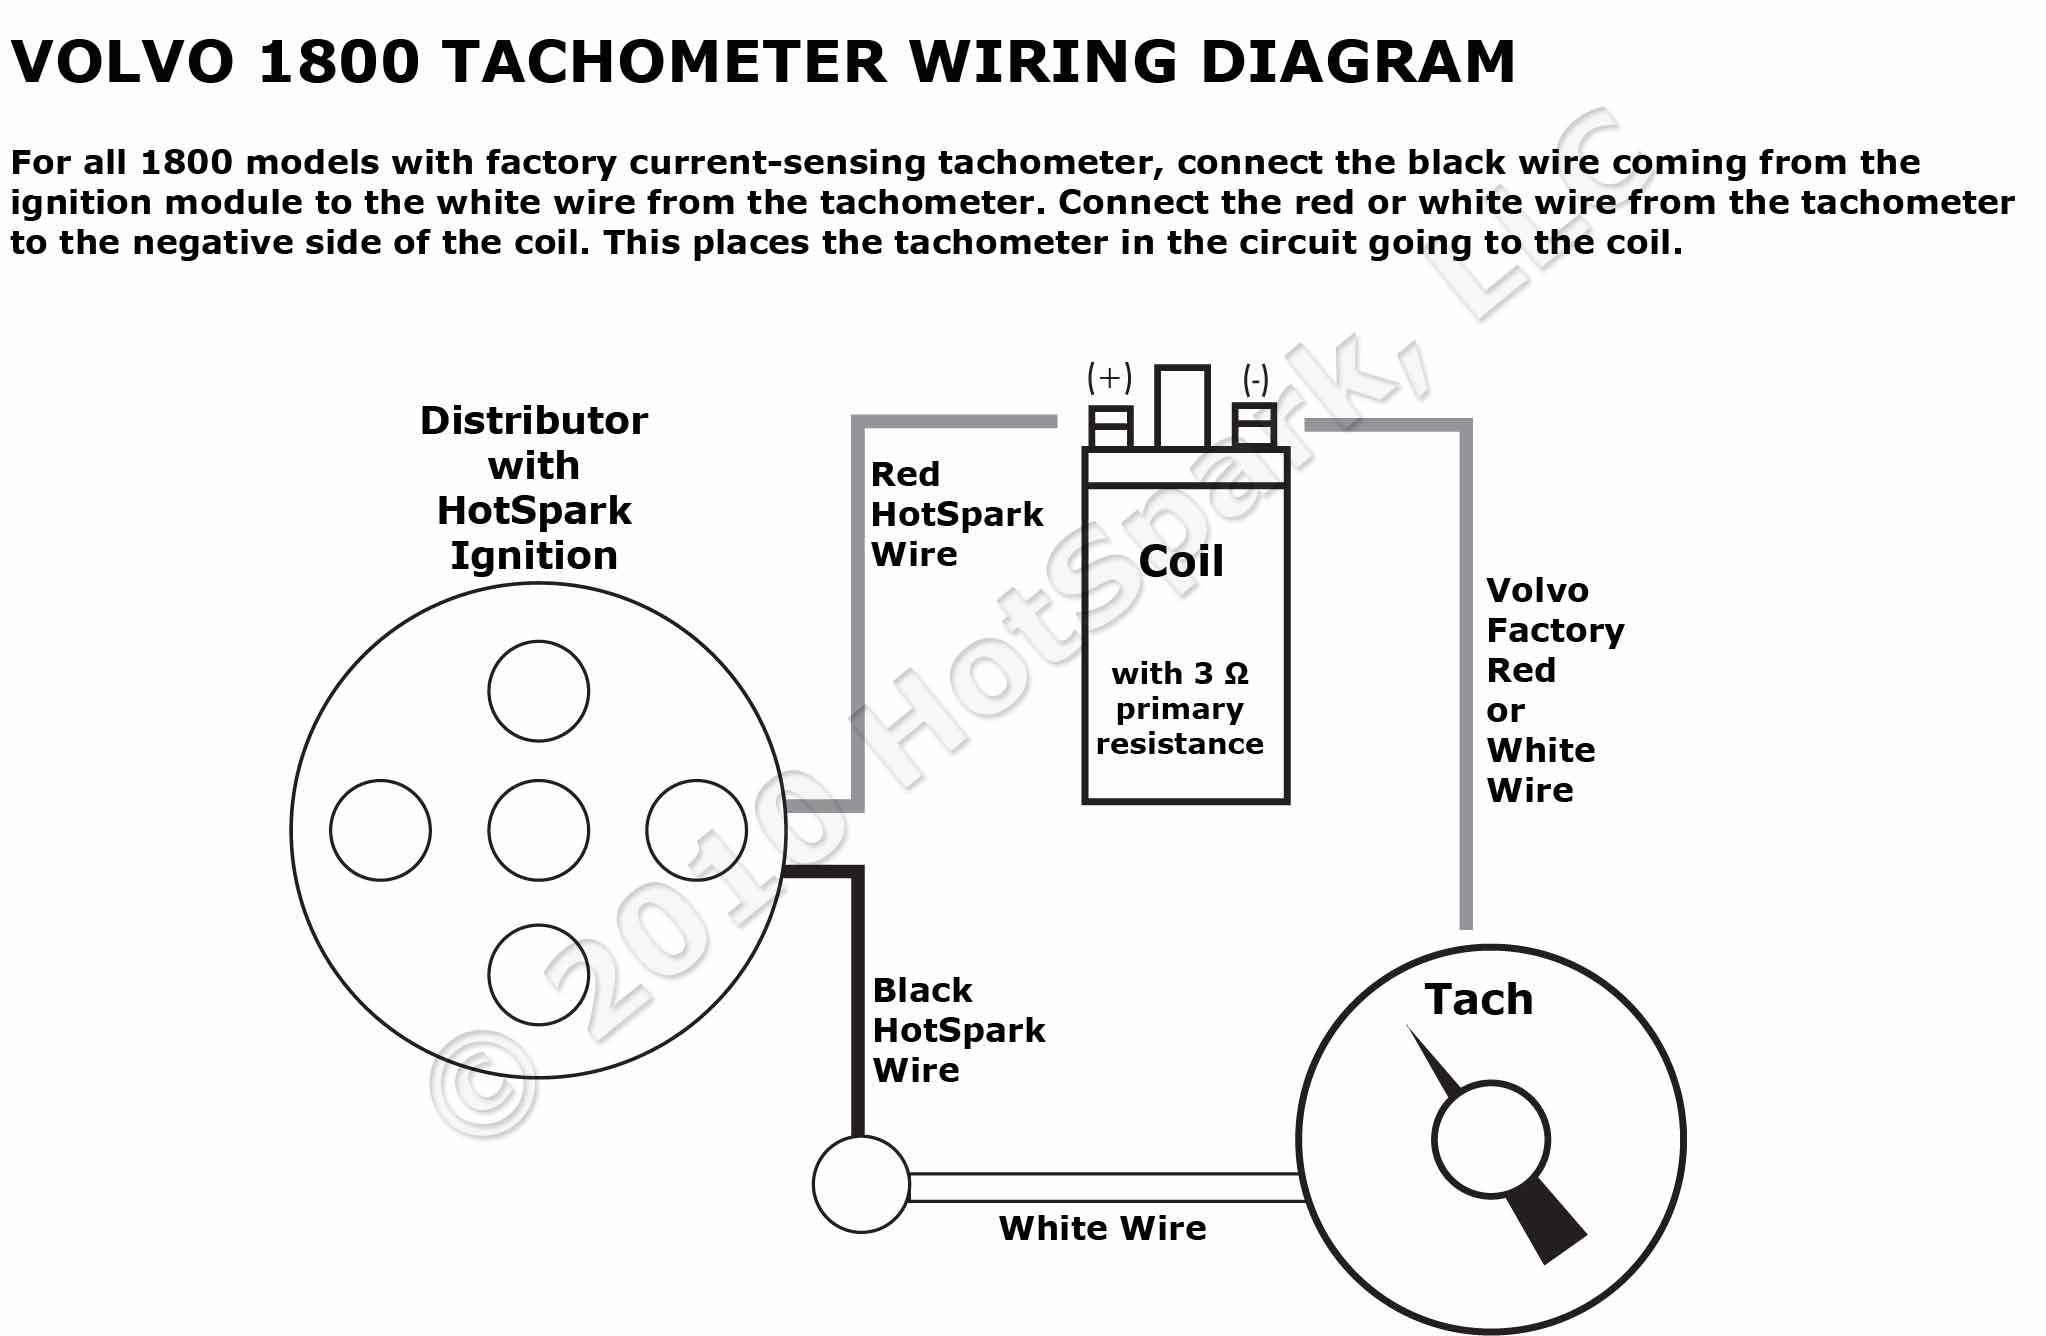 Volvo 1800 Tachometer and Hot Spark Wiring Diagram datcon tachometer wiring diagram datcon tachometer installation  at soozxer.org